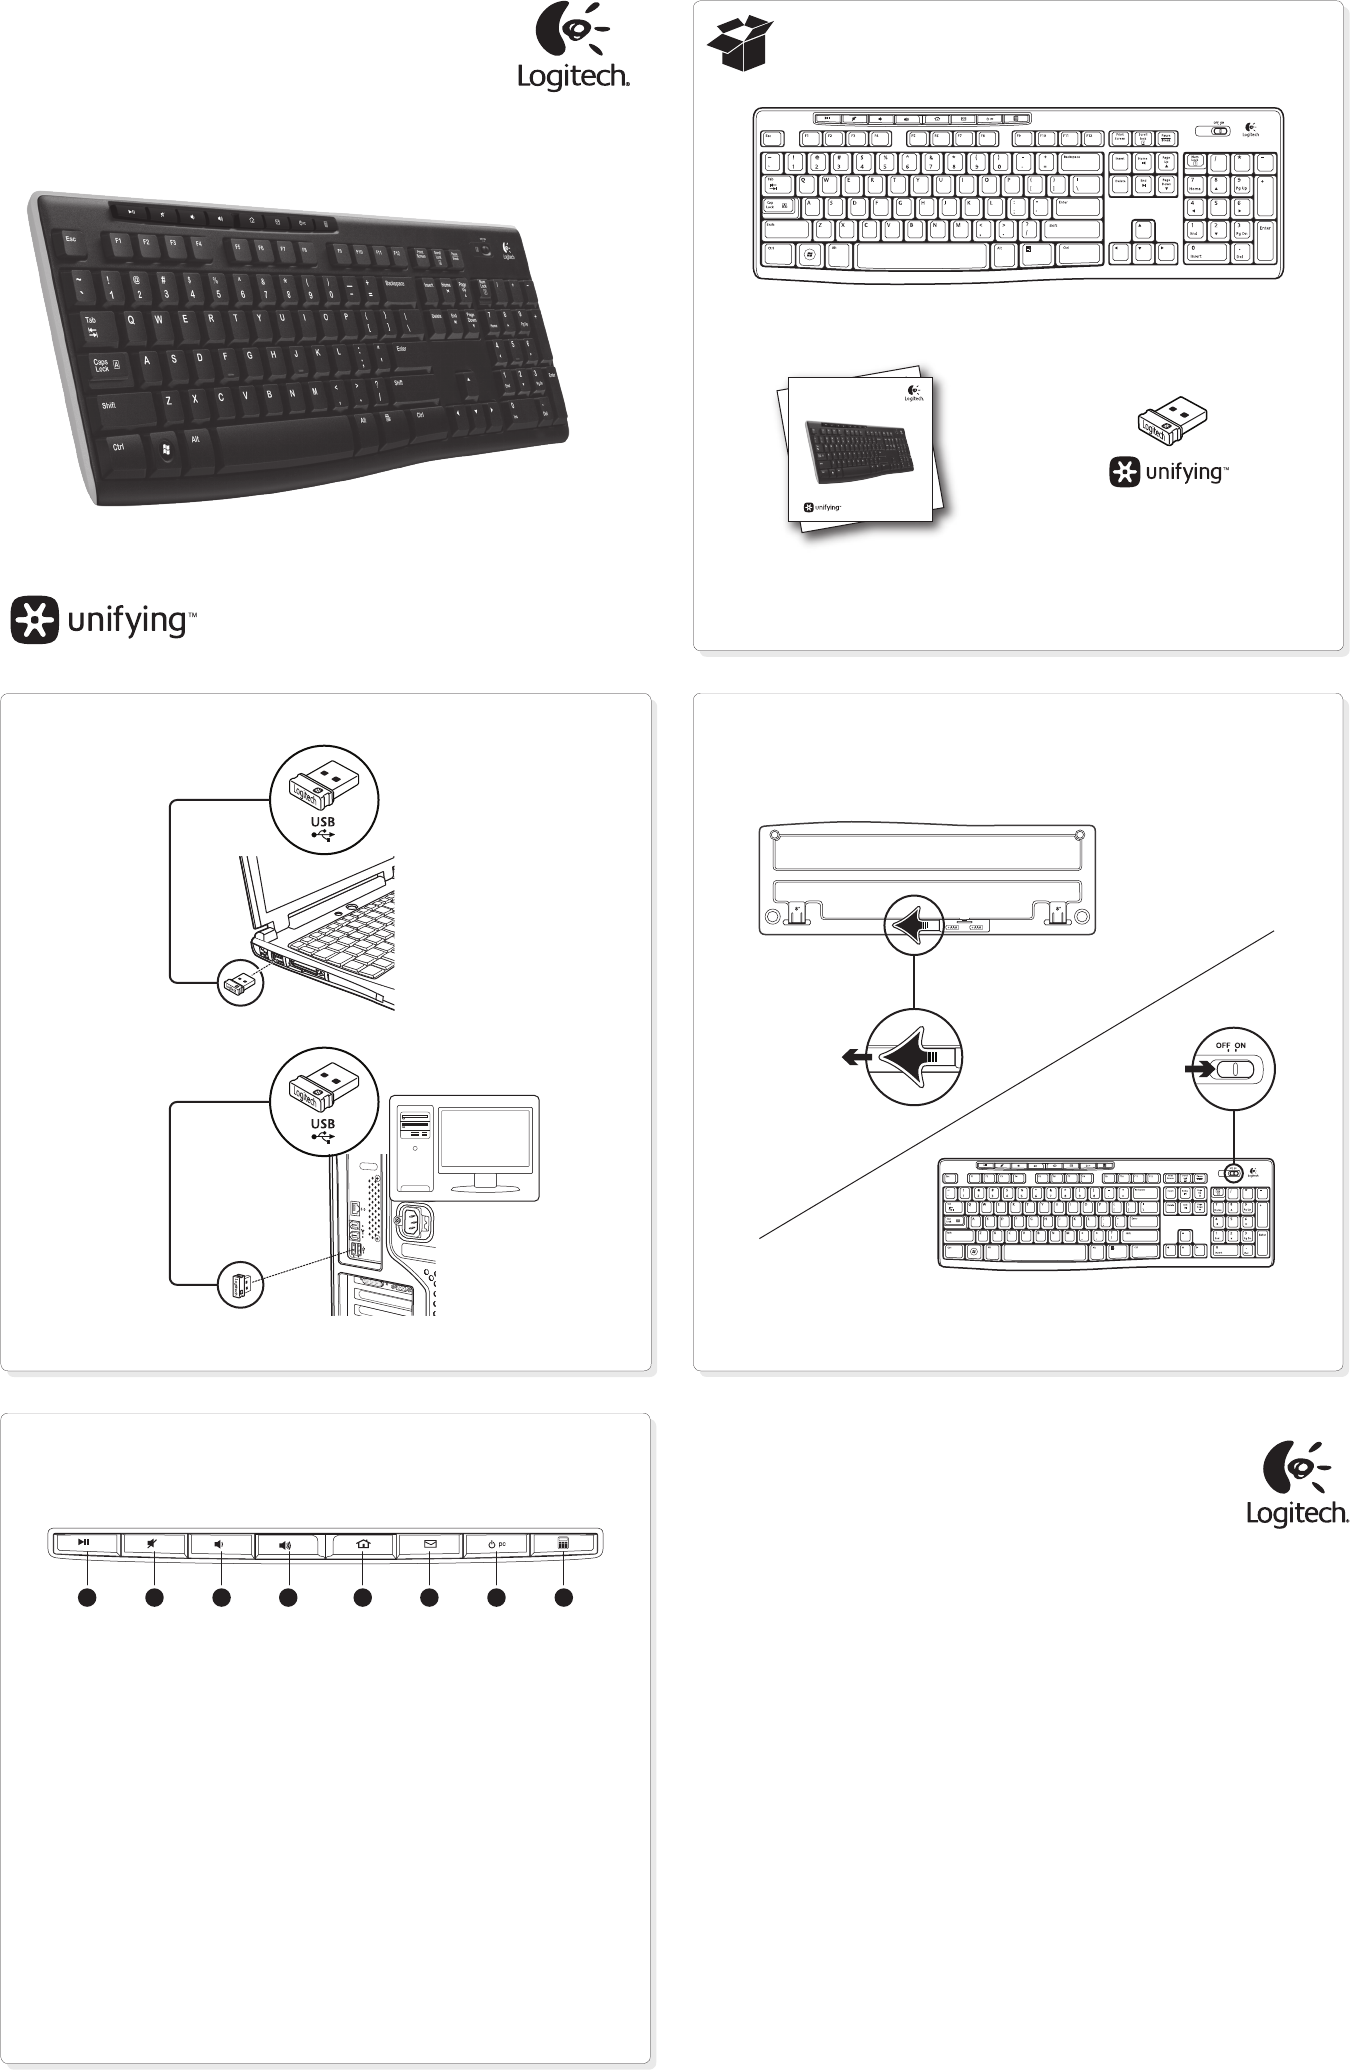 Manual for Logitech Keyboard